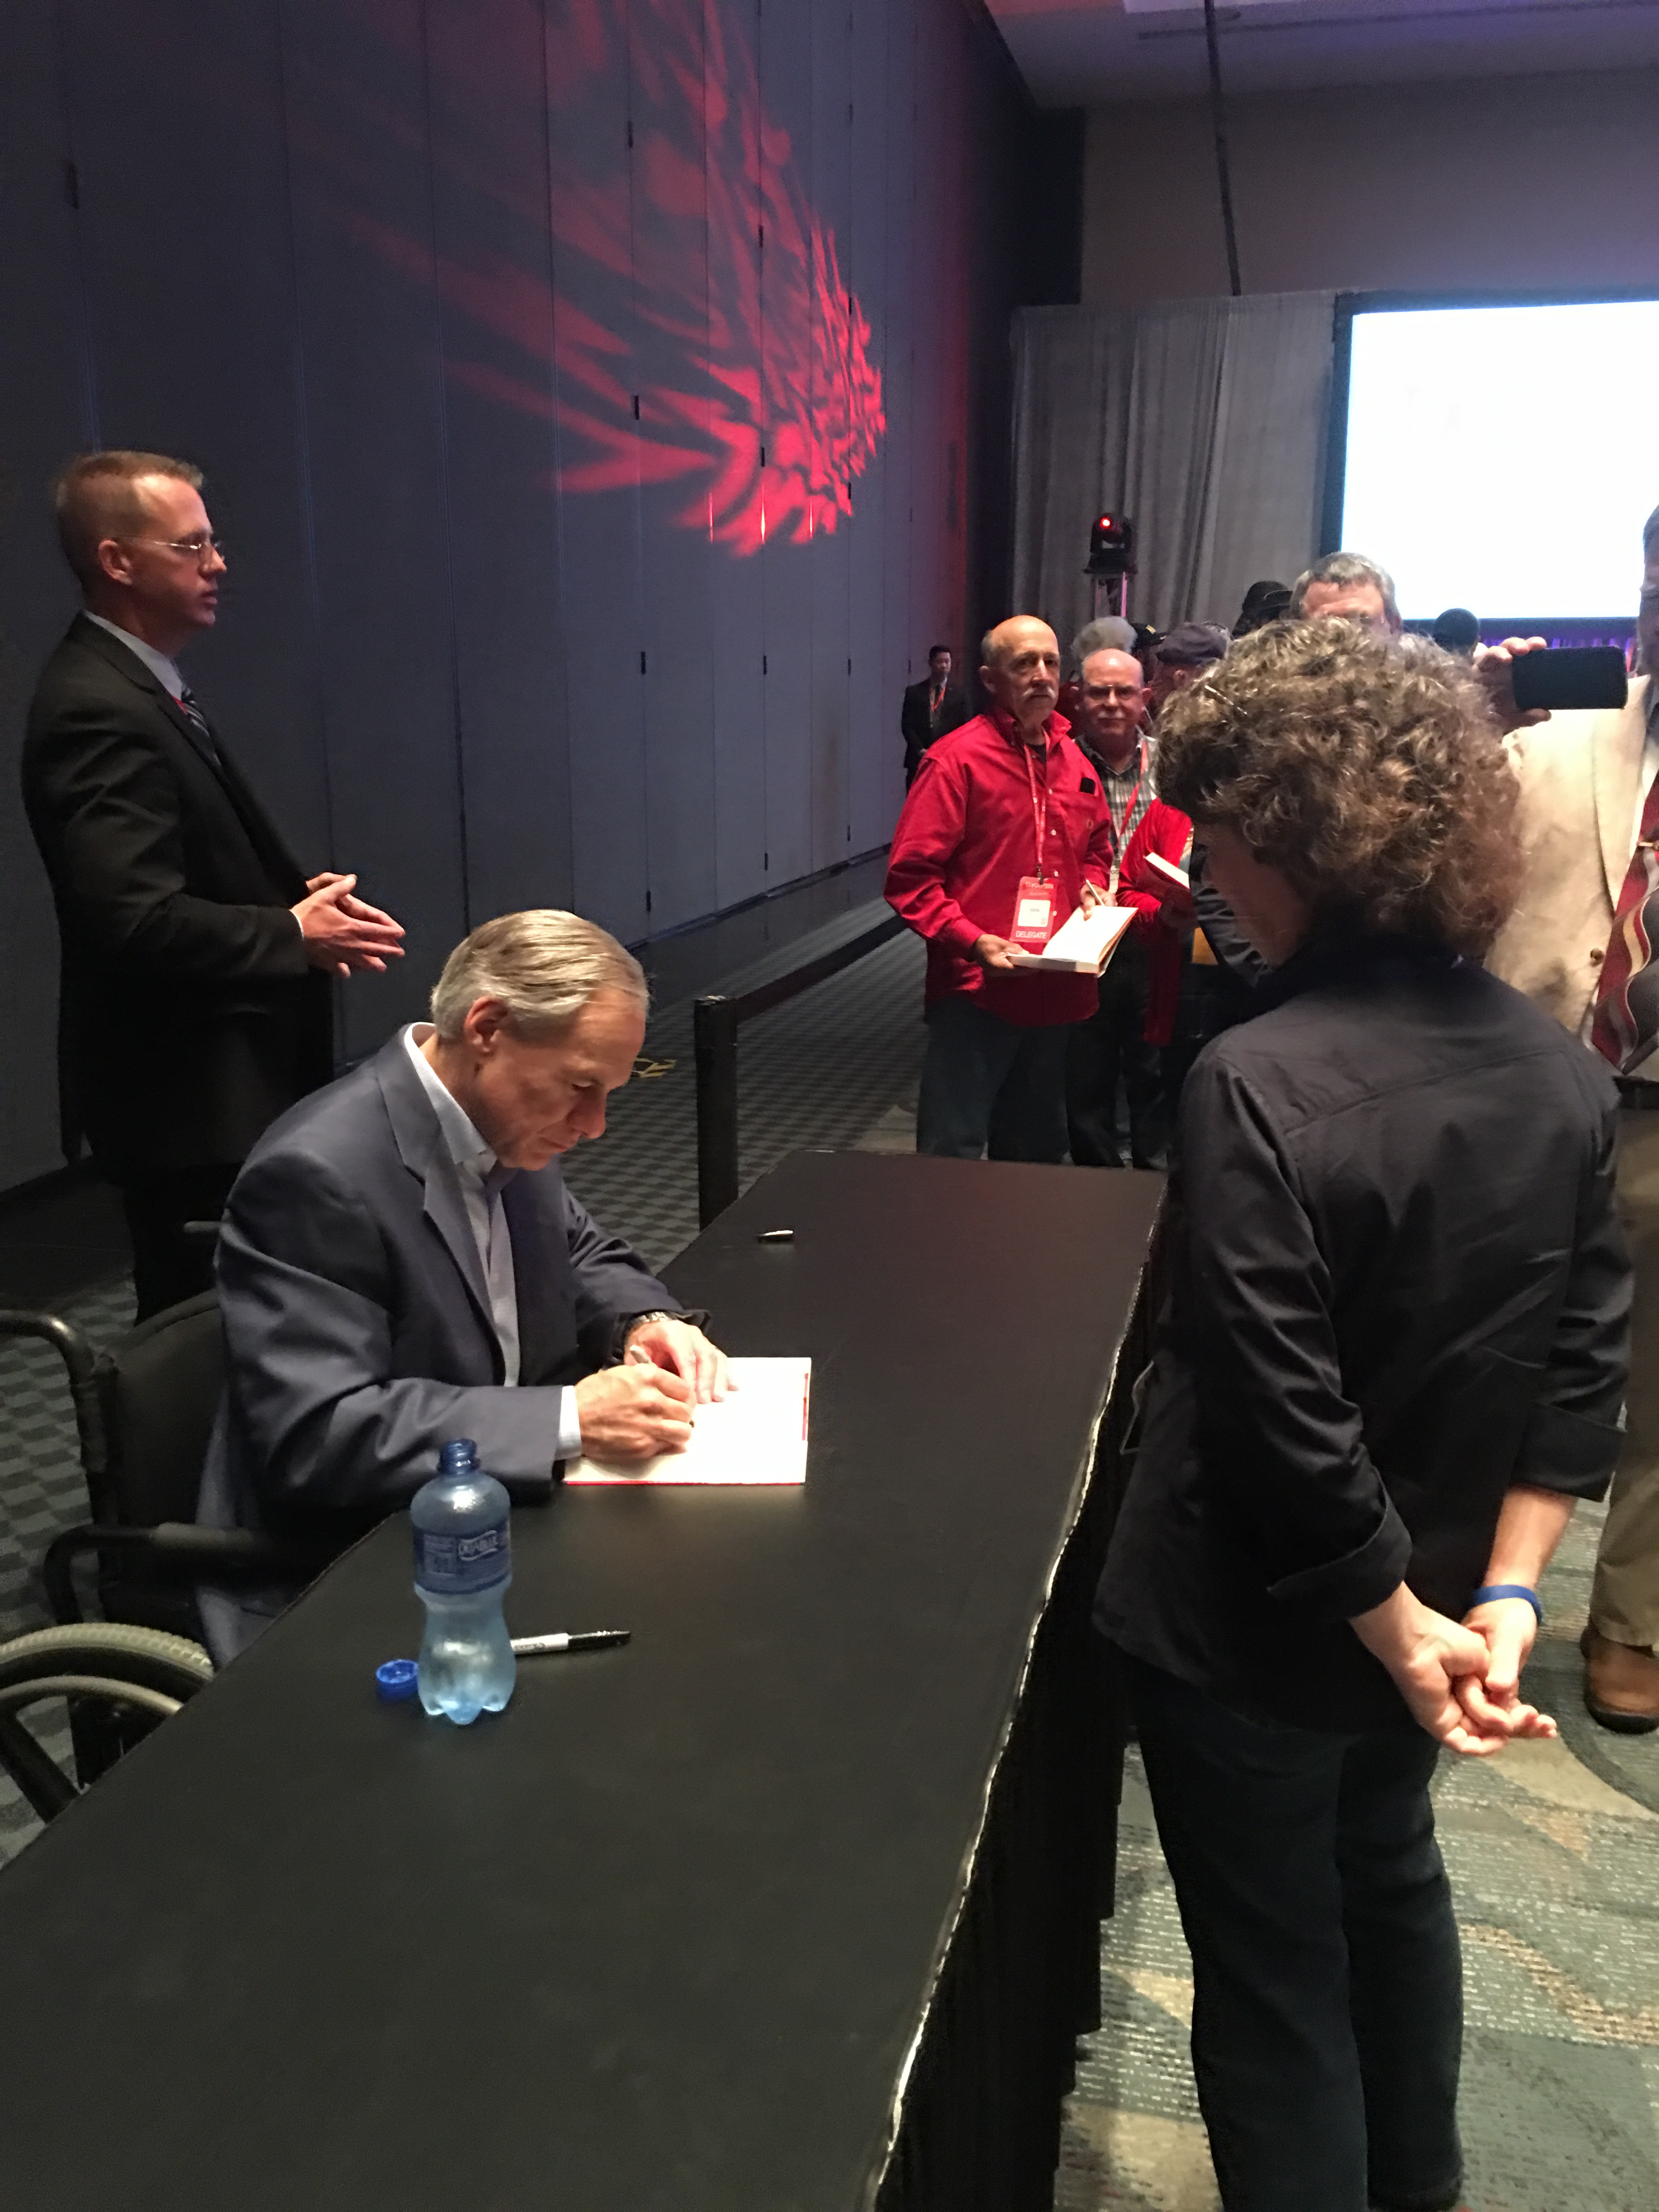 Governor_Abbott_Signs_Angie_Turner_Copy_of_Broken_But_Unbowed.JPG